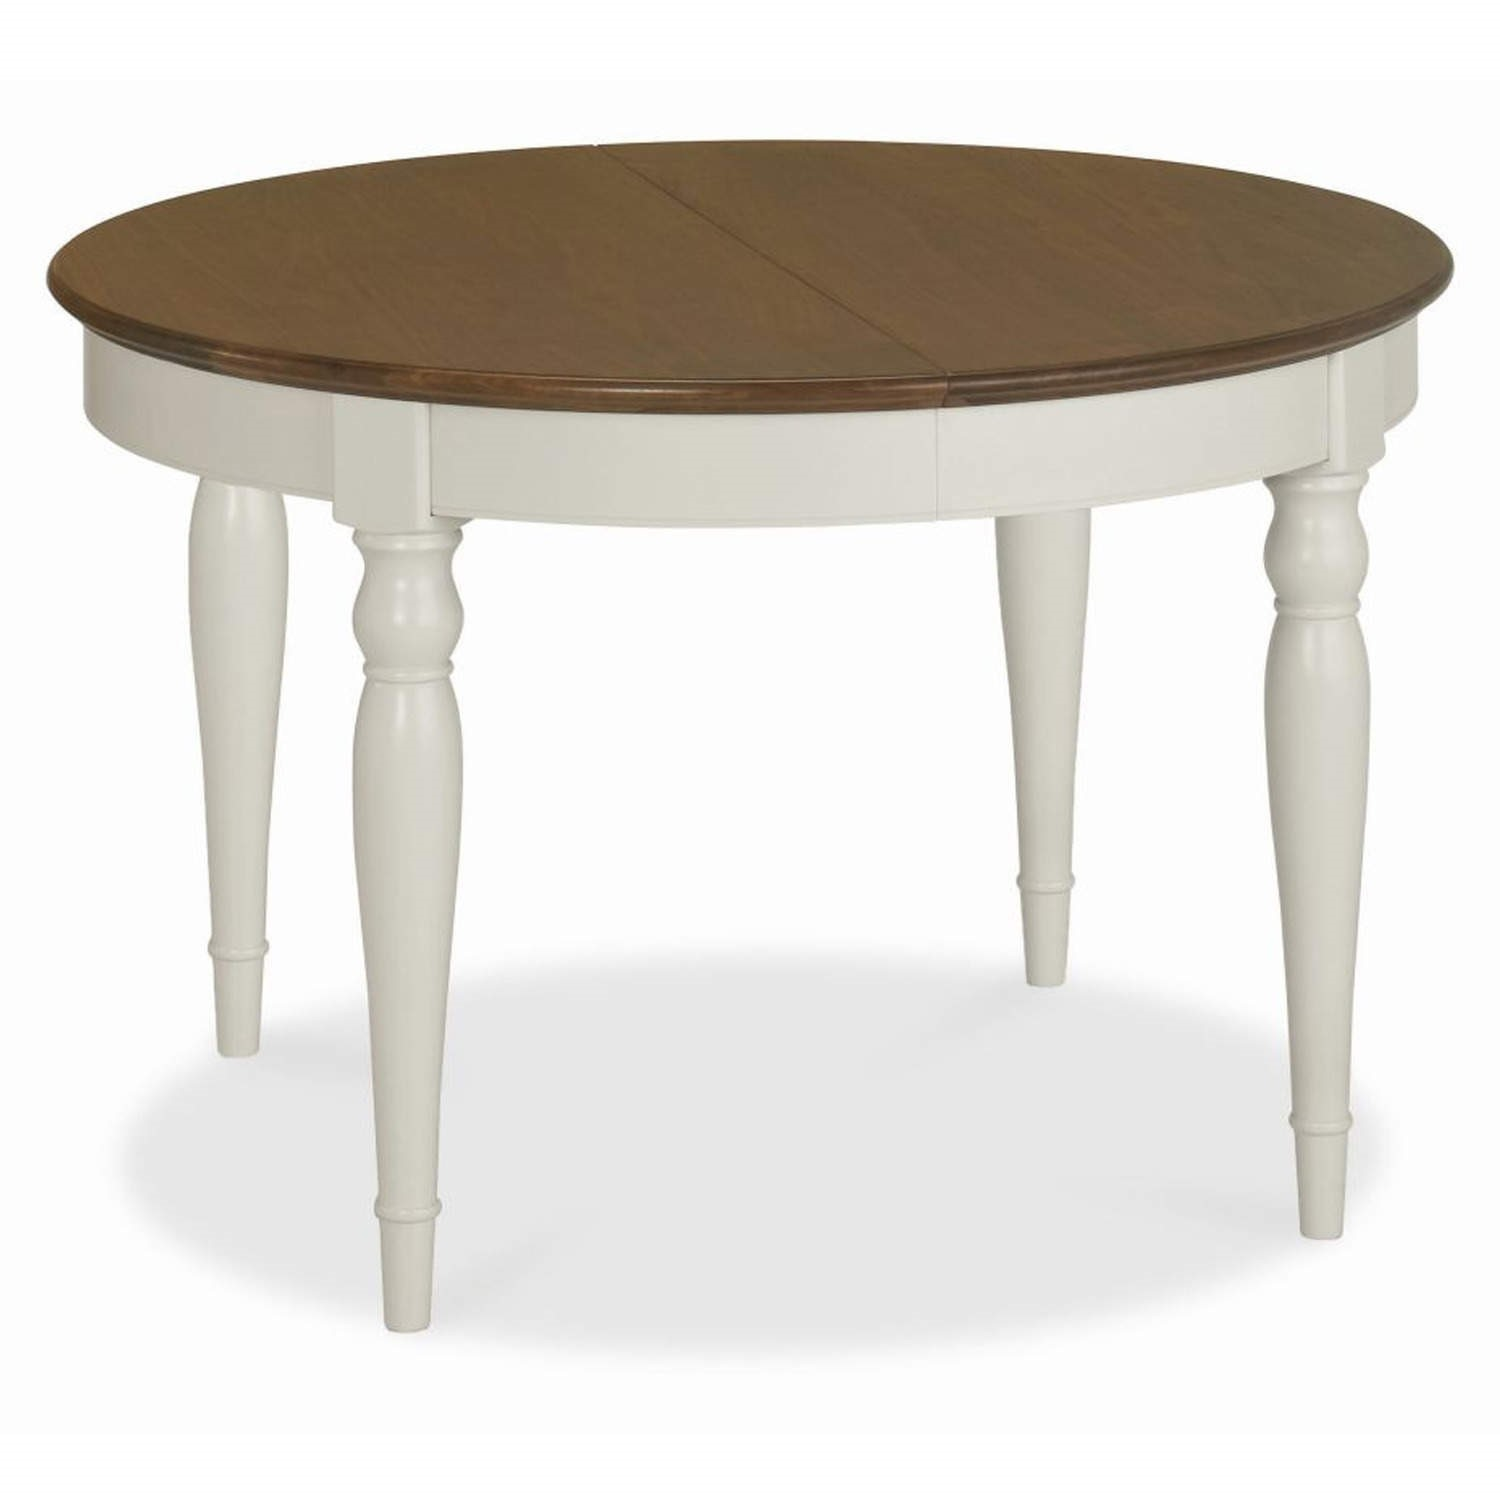 Bentley Designs Hampstead Round Extending Dining Table In Grey/Walnut